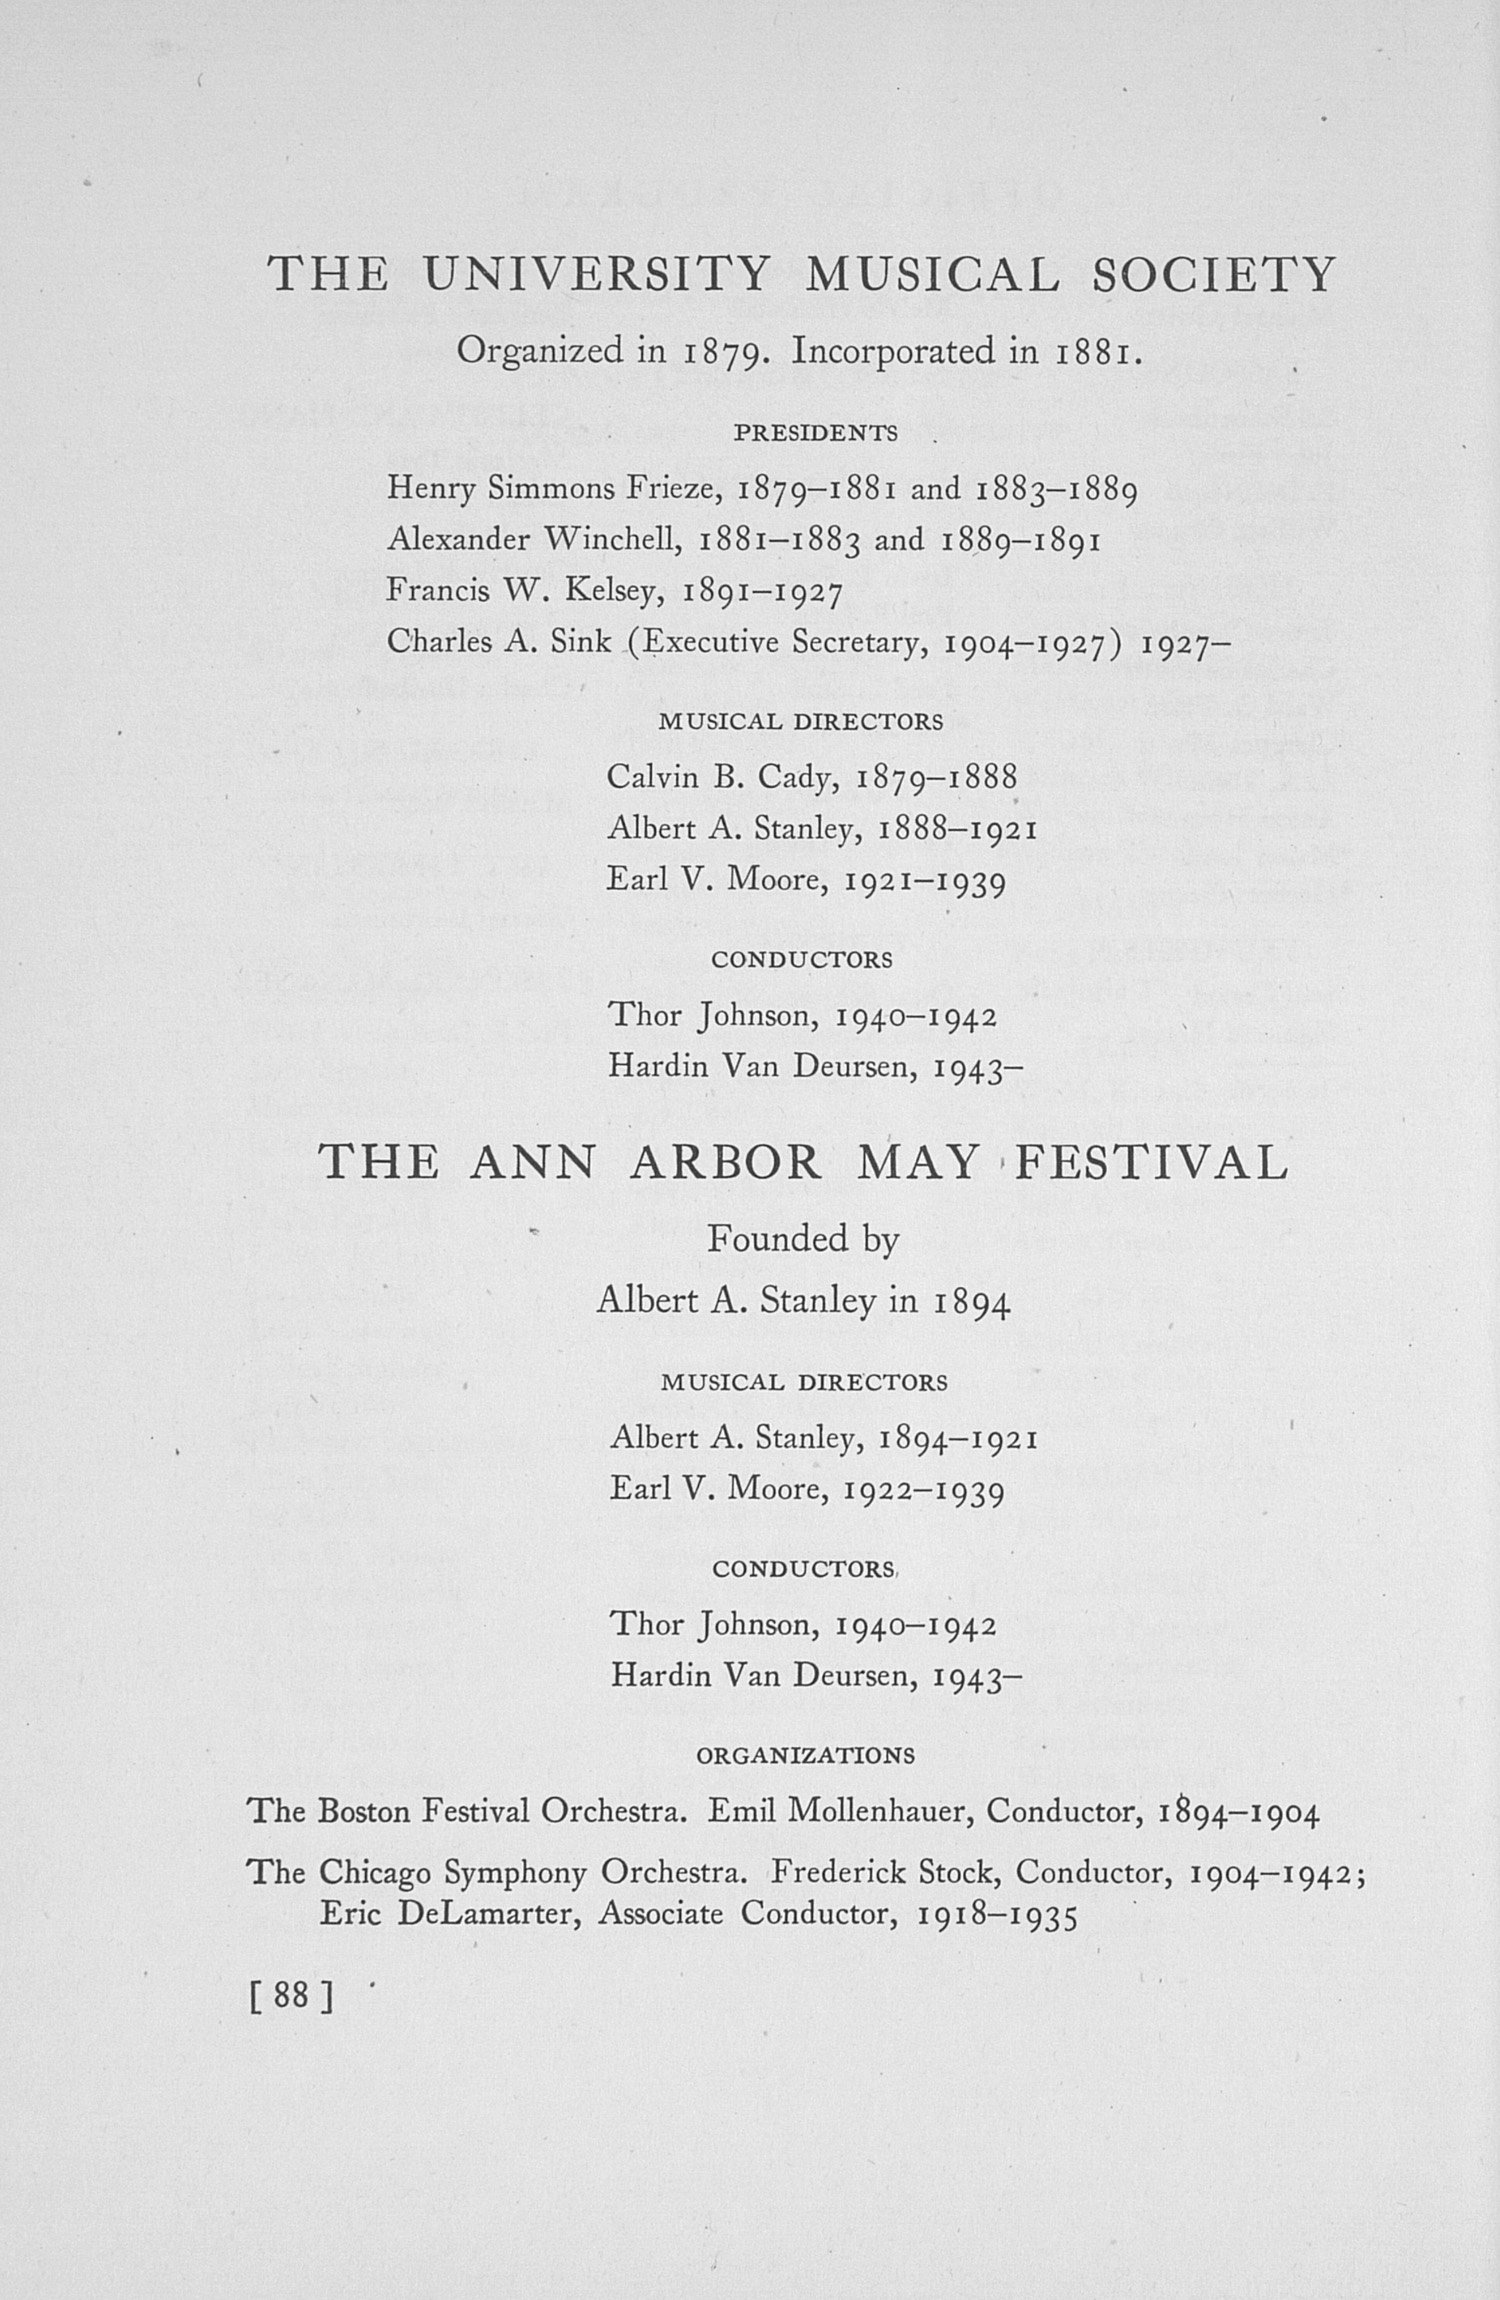 UMS Concert Program, May 5,6,7, And 1943: The Fiftieth Annual May Festival -- The Philadelphia Orchestra image